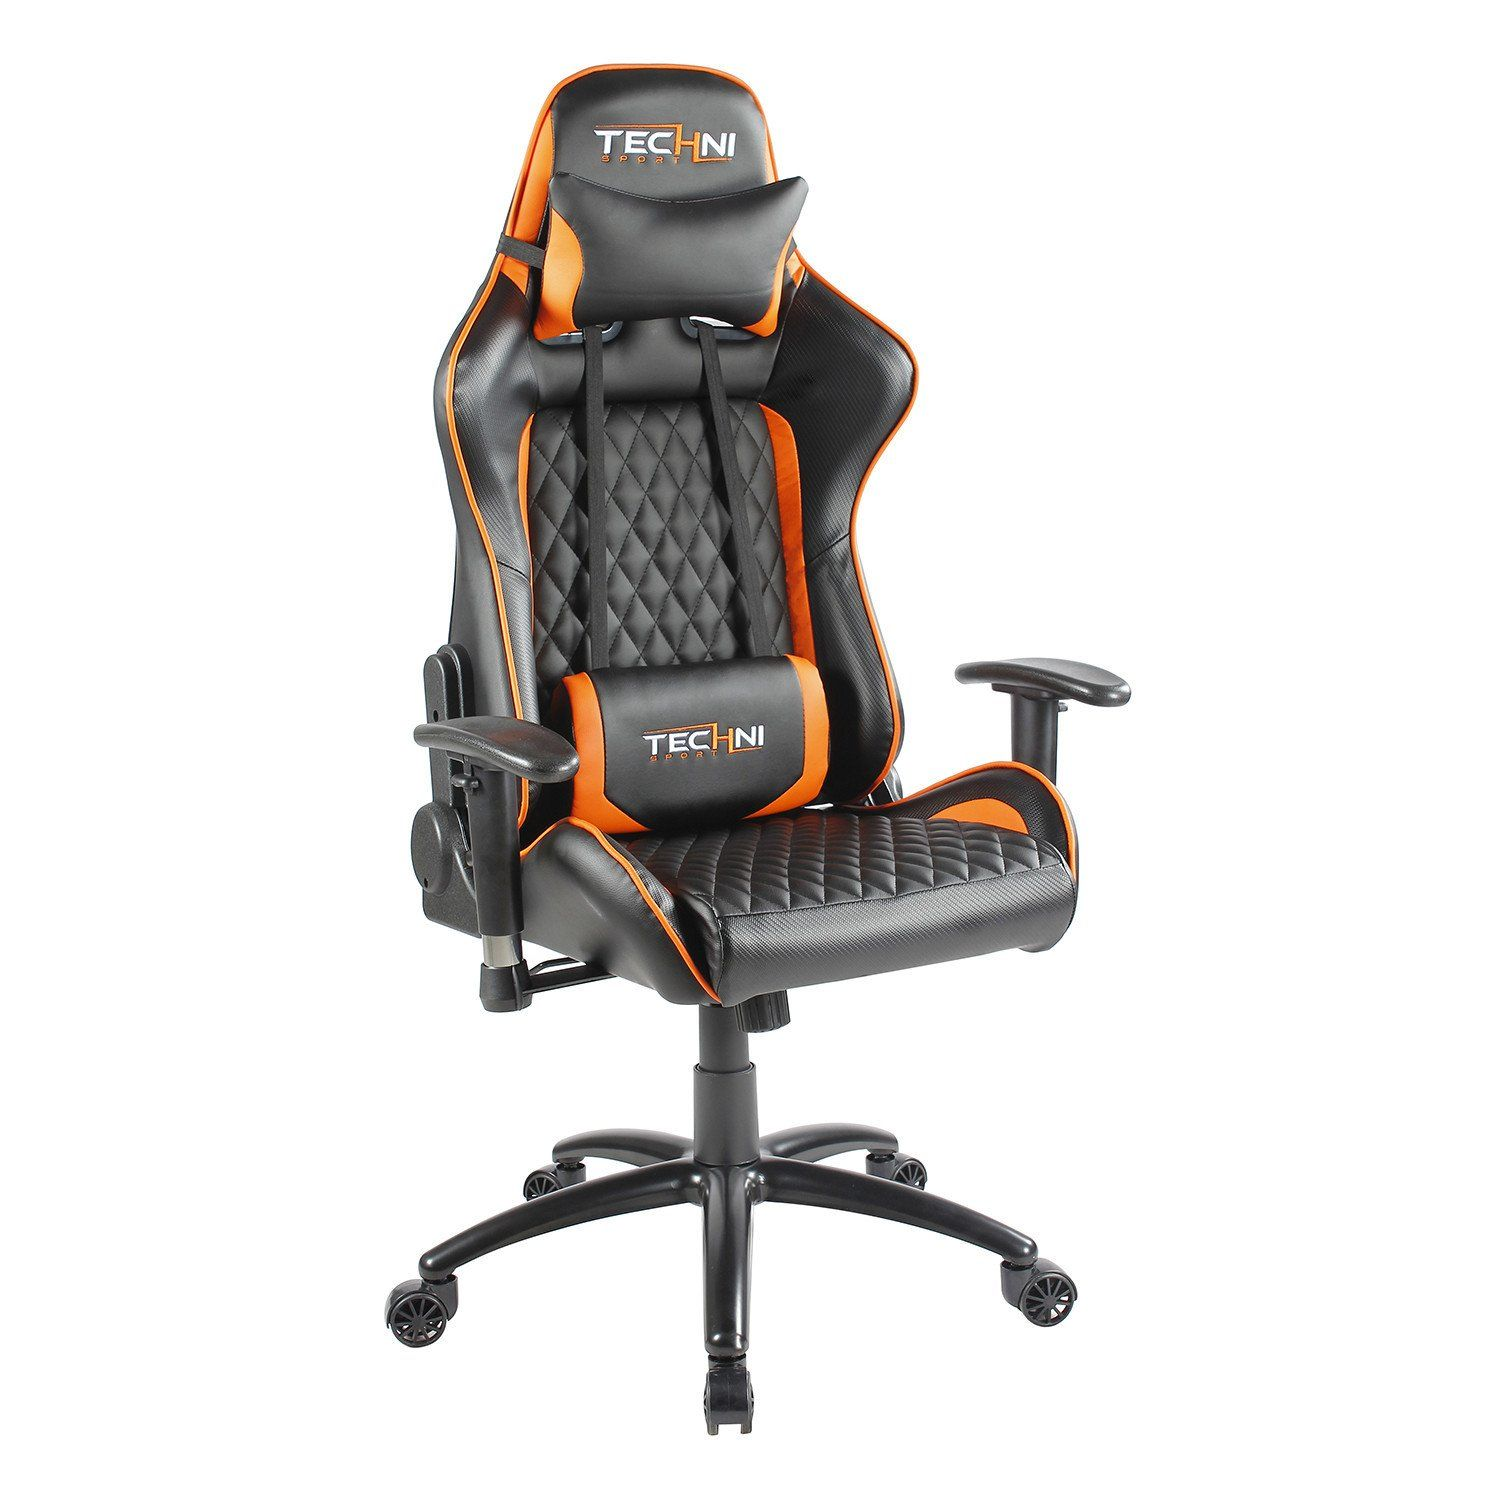 Ts50 orange gaming chair gaming chair pc gaming chair